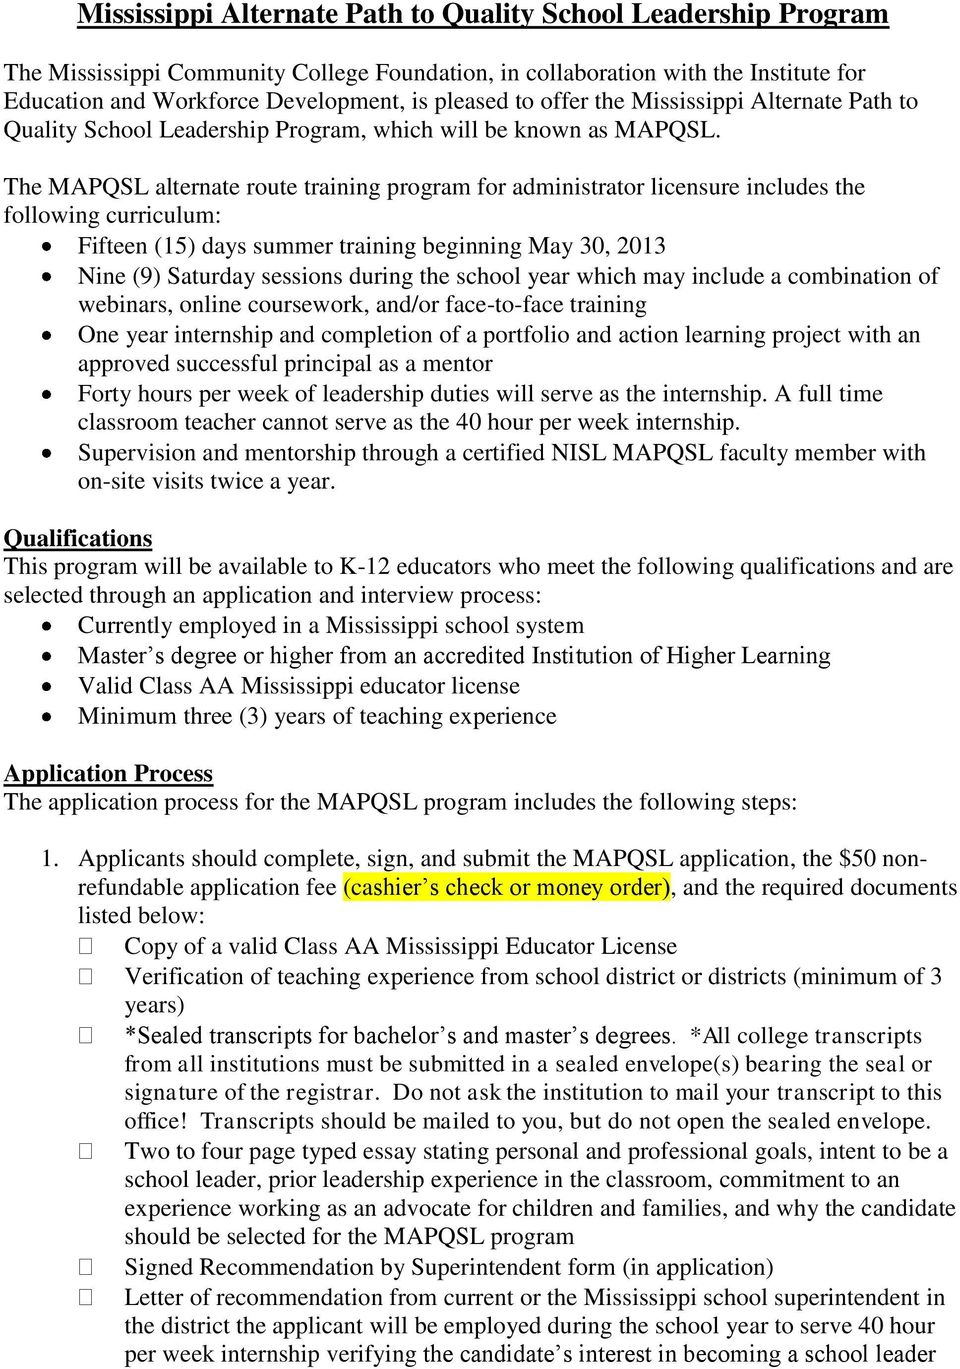 The MAPQSL alternate route training program for administrator licensure includes the following curriculum: Fifteen (15) days summer training beginning May 30, 2013 Nine (9) Saturday sessions during